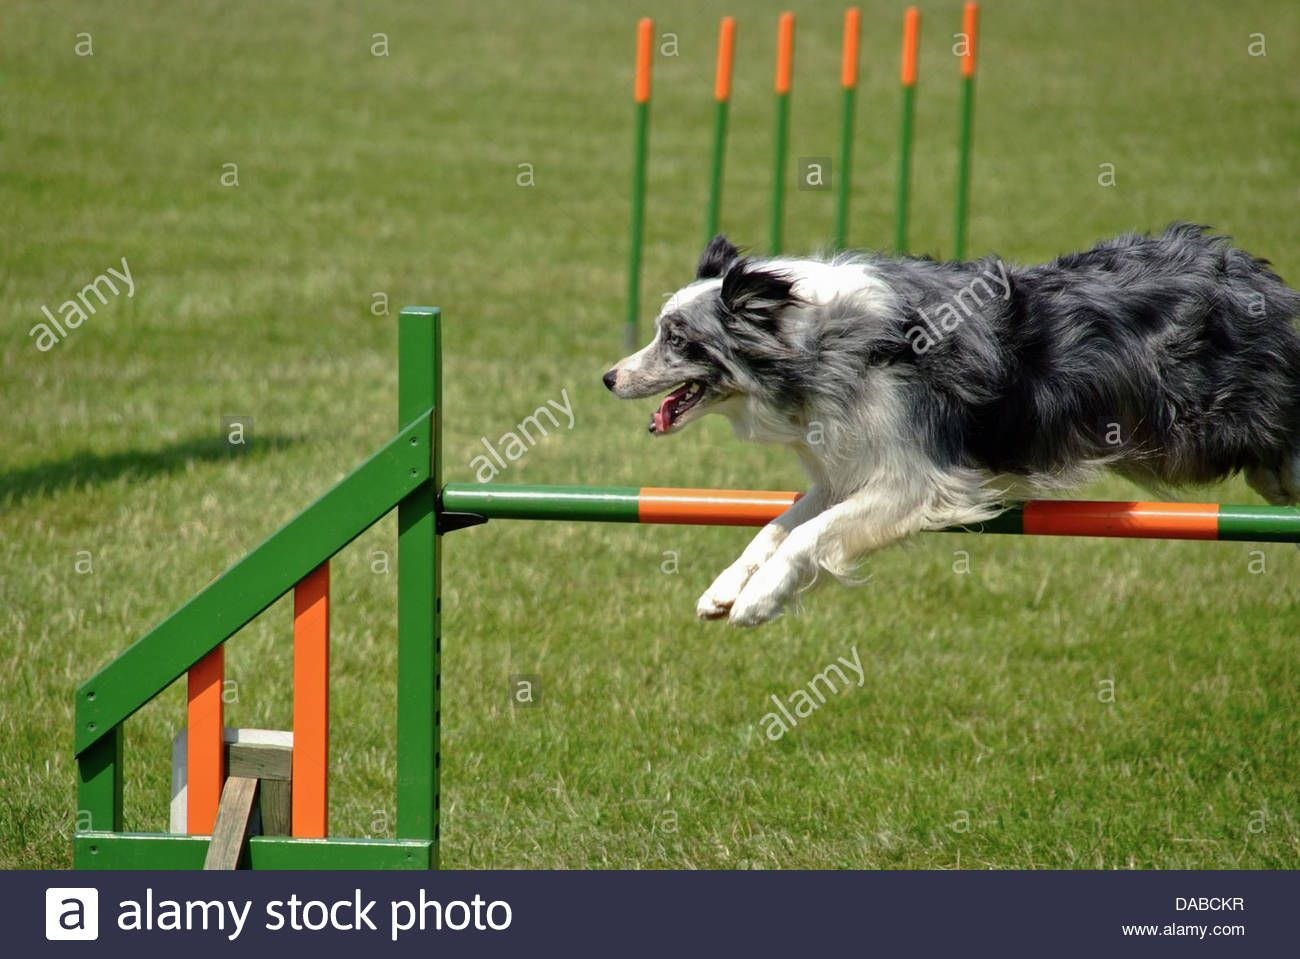 Border Collie Show Dogs Blue Merle Colored Border Collie Going Over Jump At Dog Agility Border Collie Collie